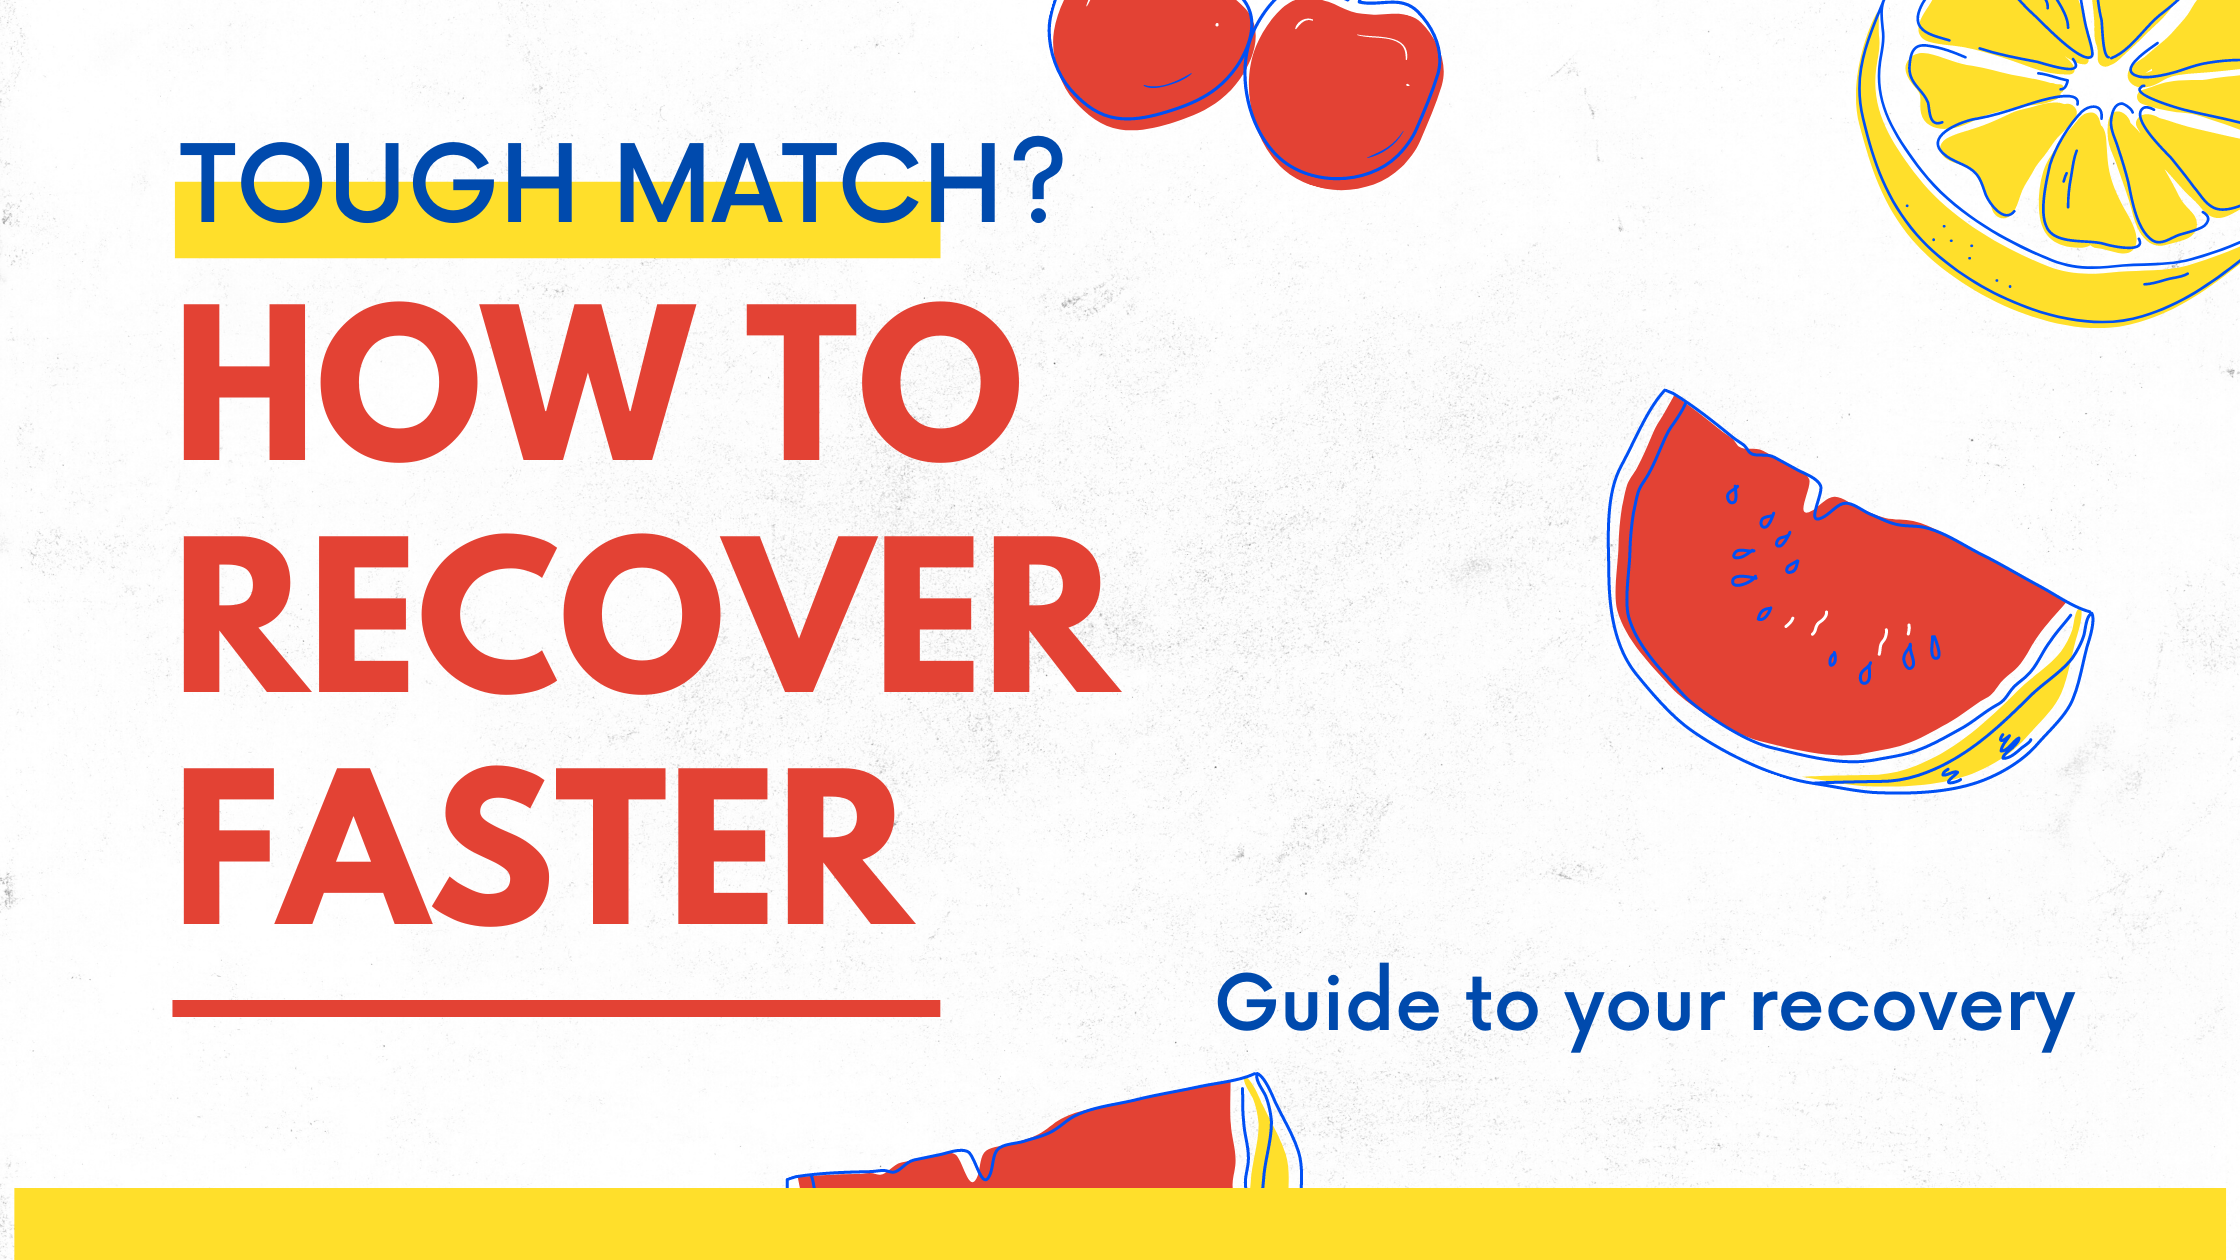 How to recover FASTER from your Tennis Match